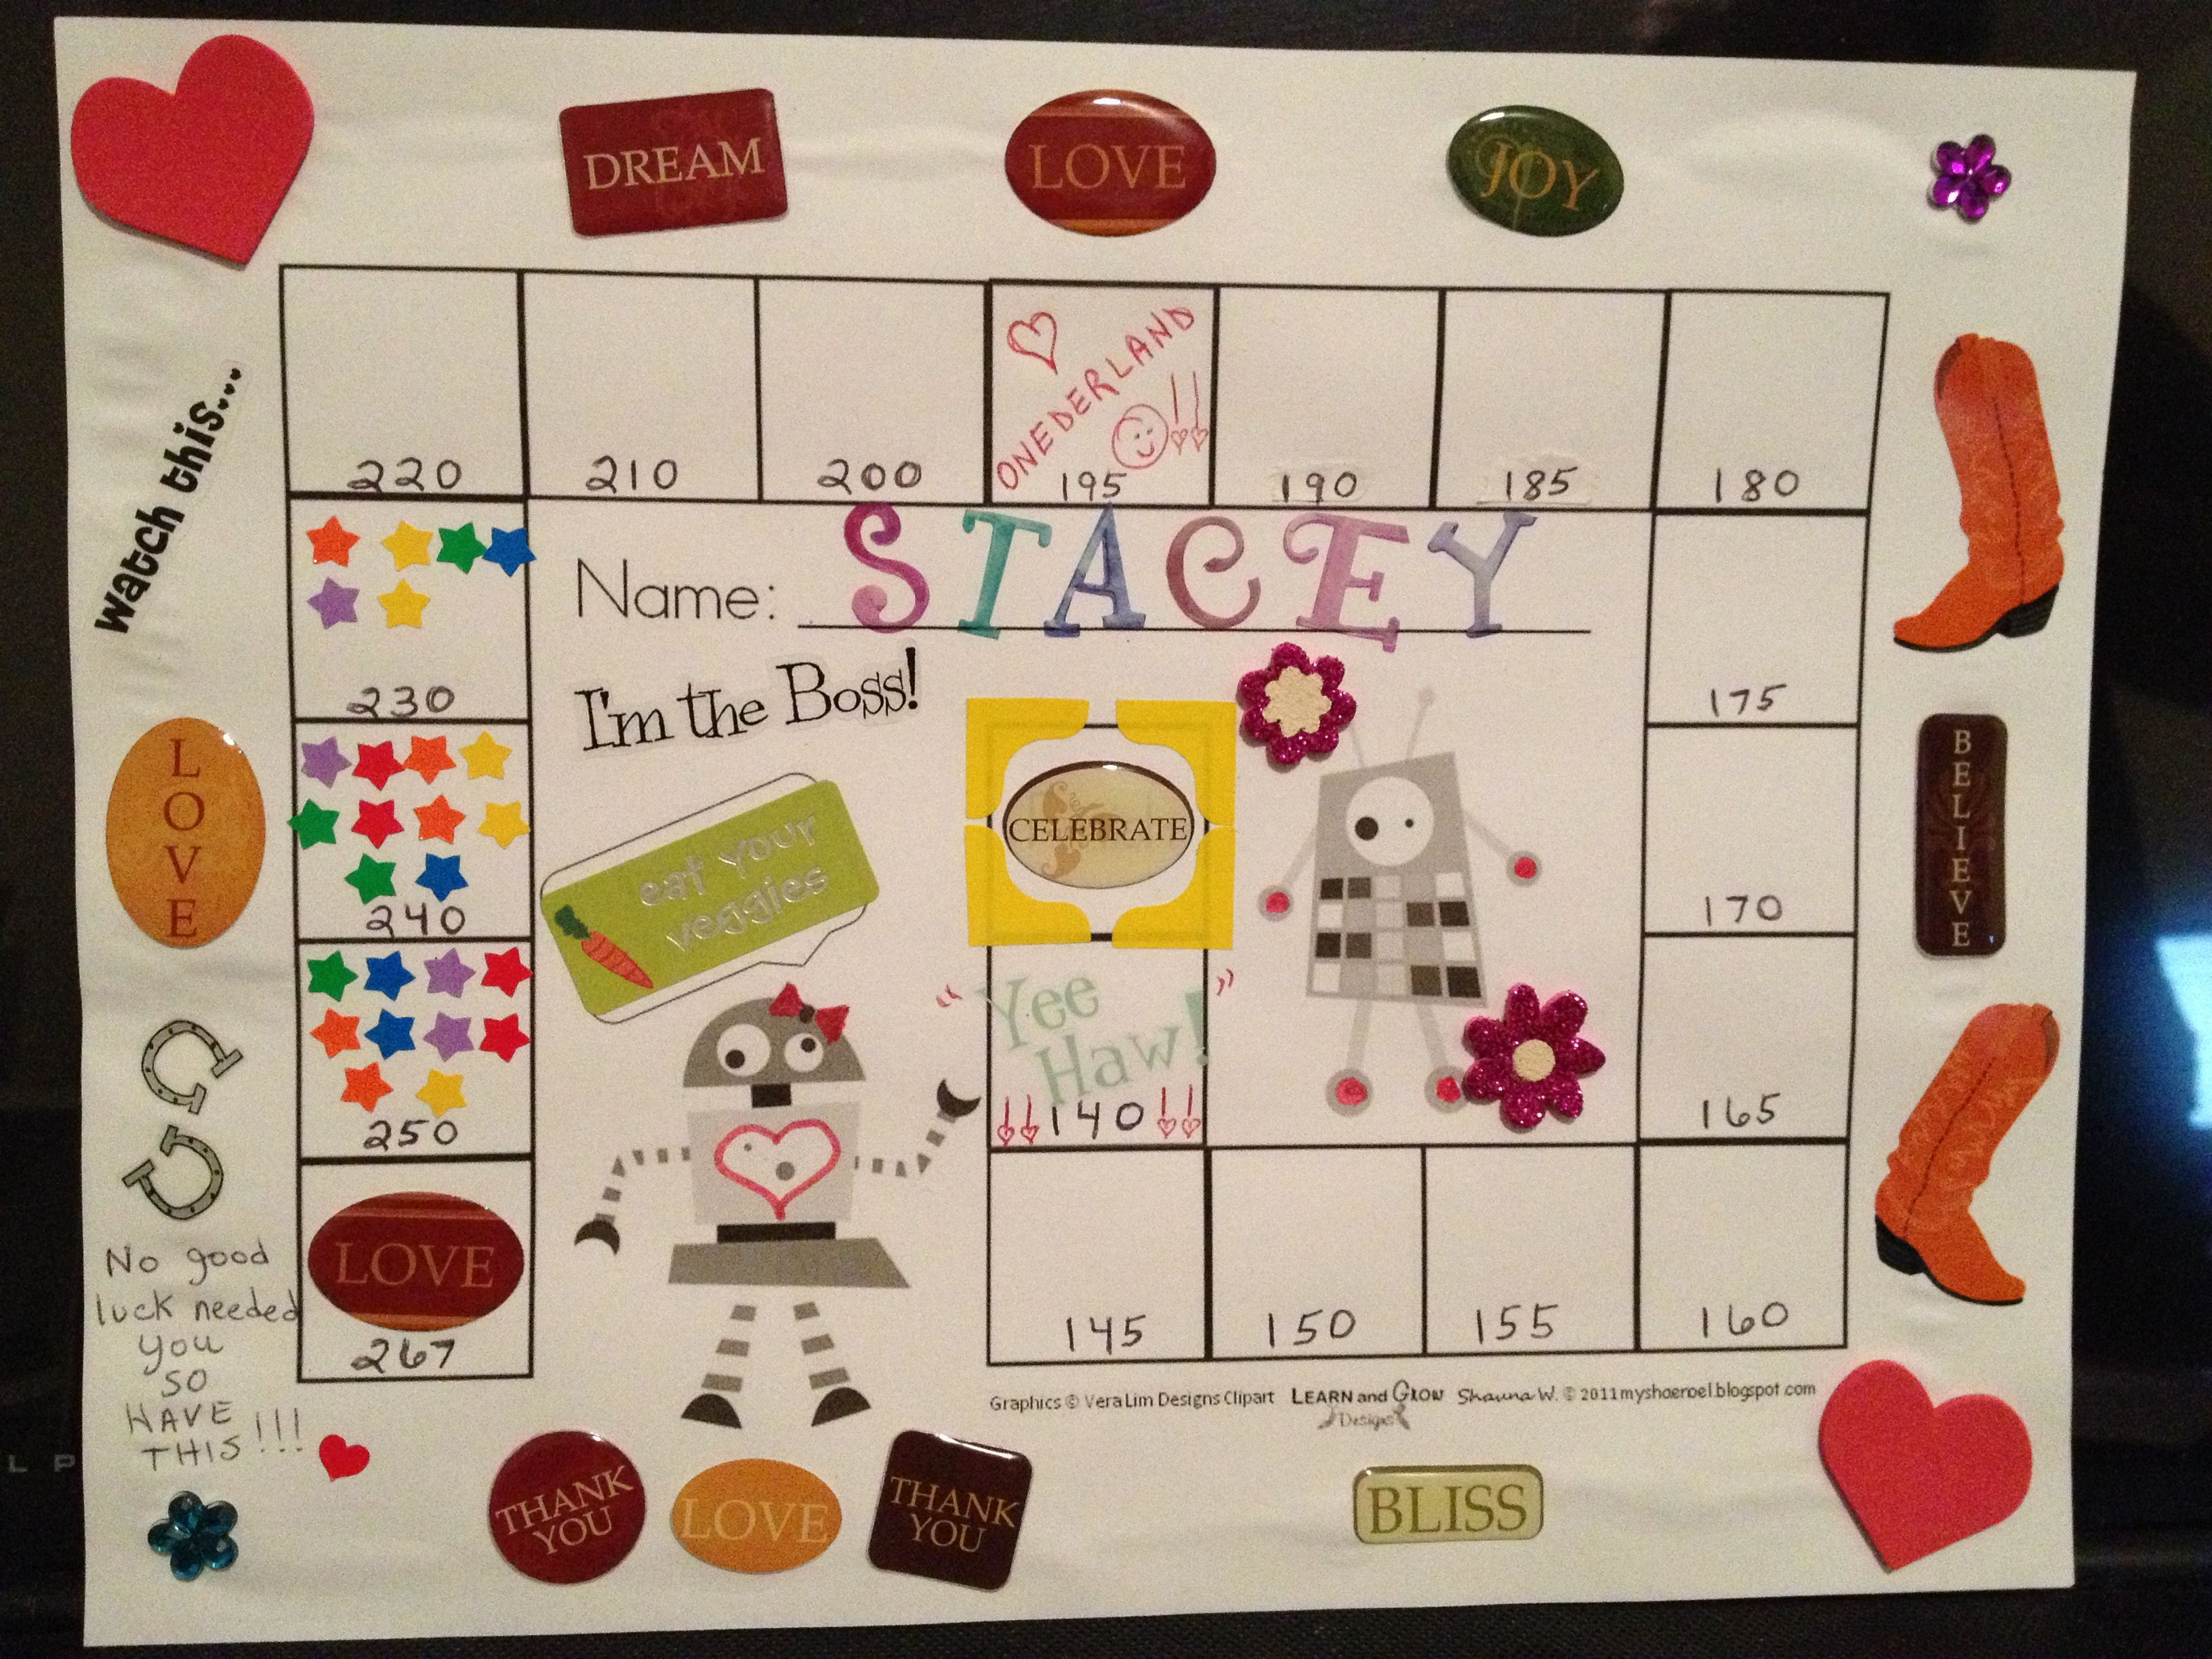 Inspirational 'game board' for weight loss! Riding lessons ...